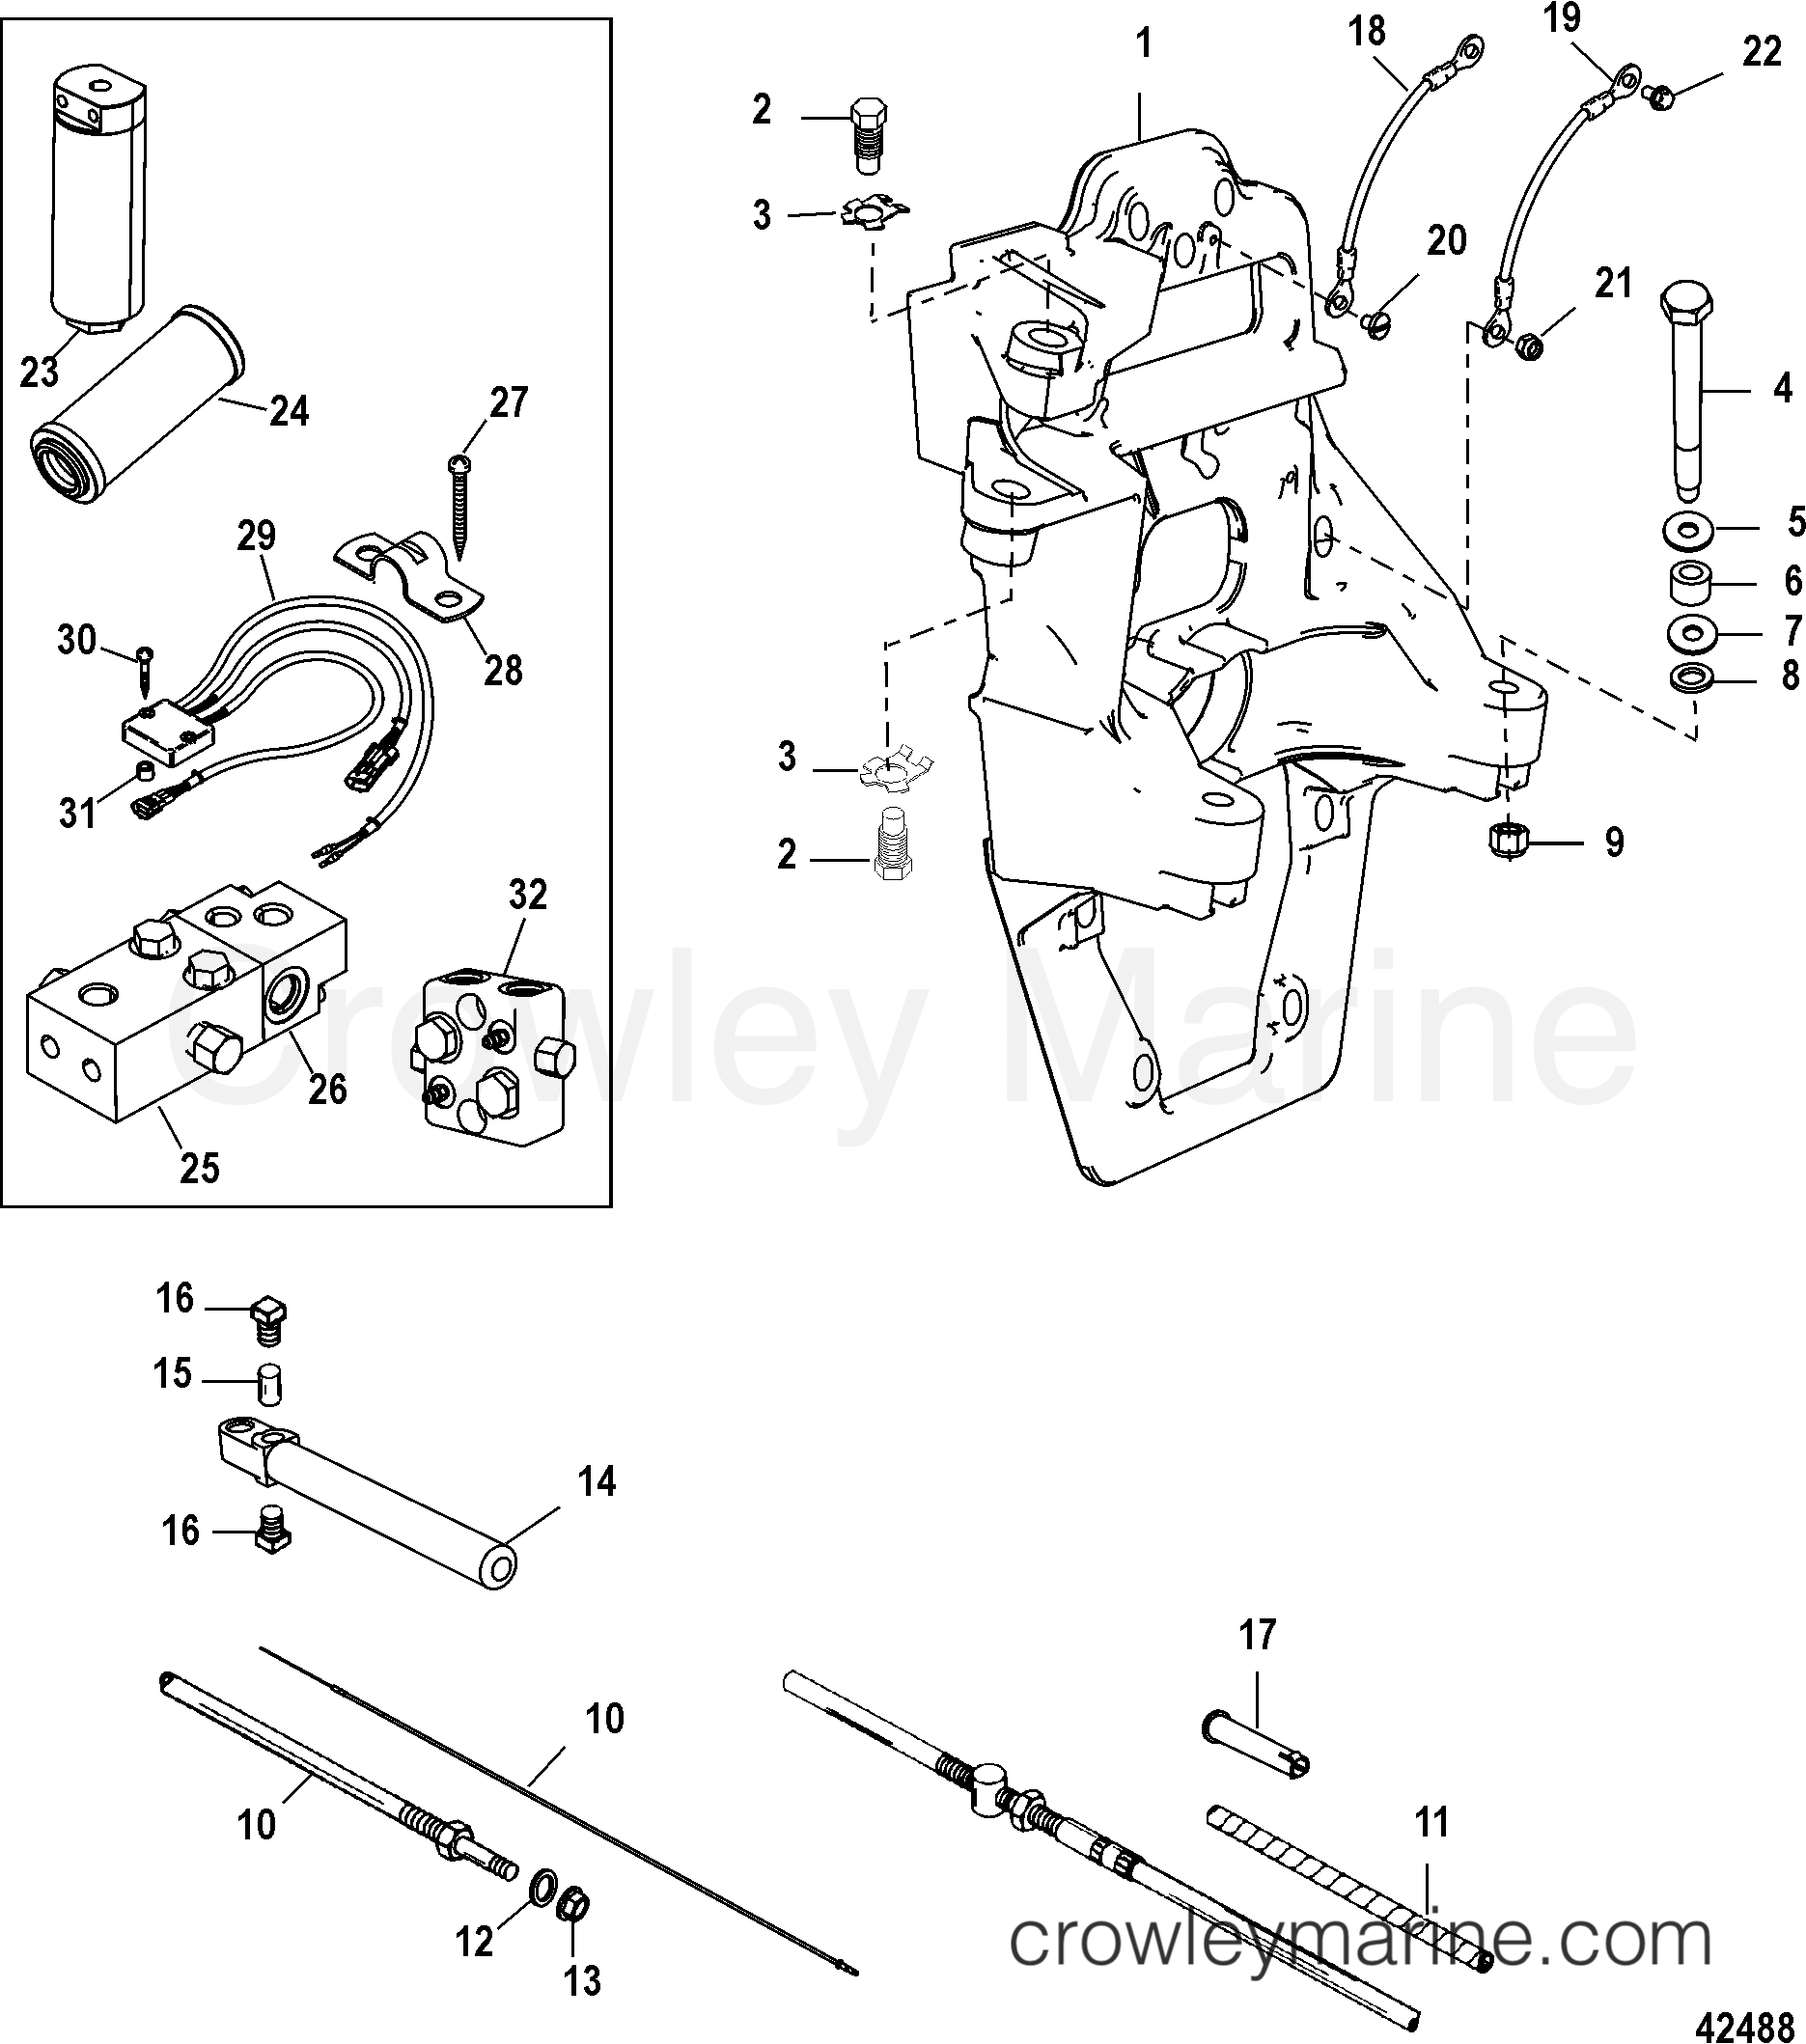 TRANSOM PLATE AND SHIFT CABLE - 1998 Mercruiser B3XR ITS [1.65:1] 5H41310TT  | Crowley MarineCrowley Marine